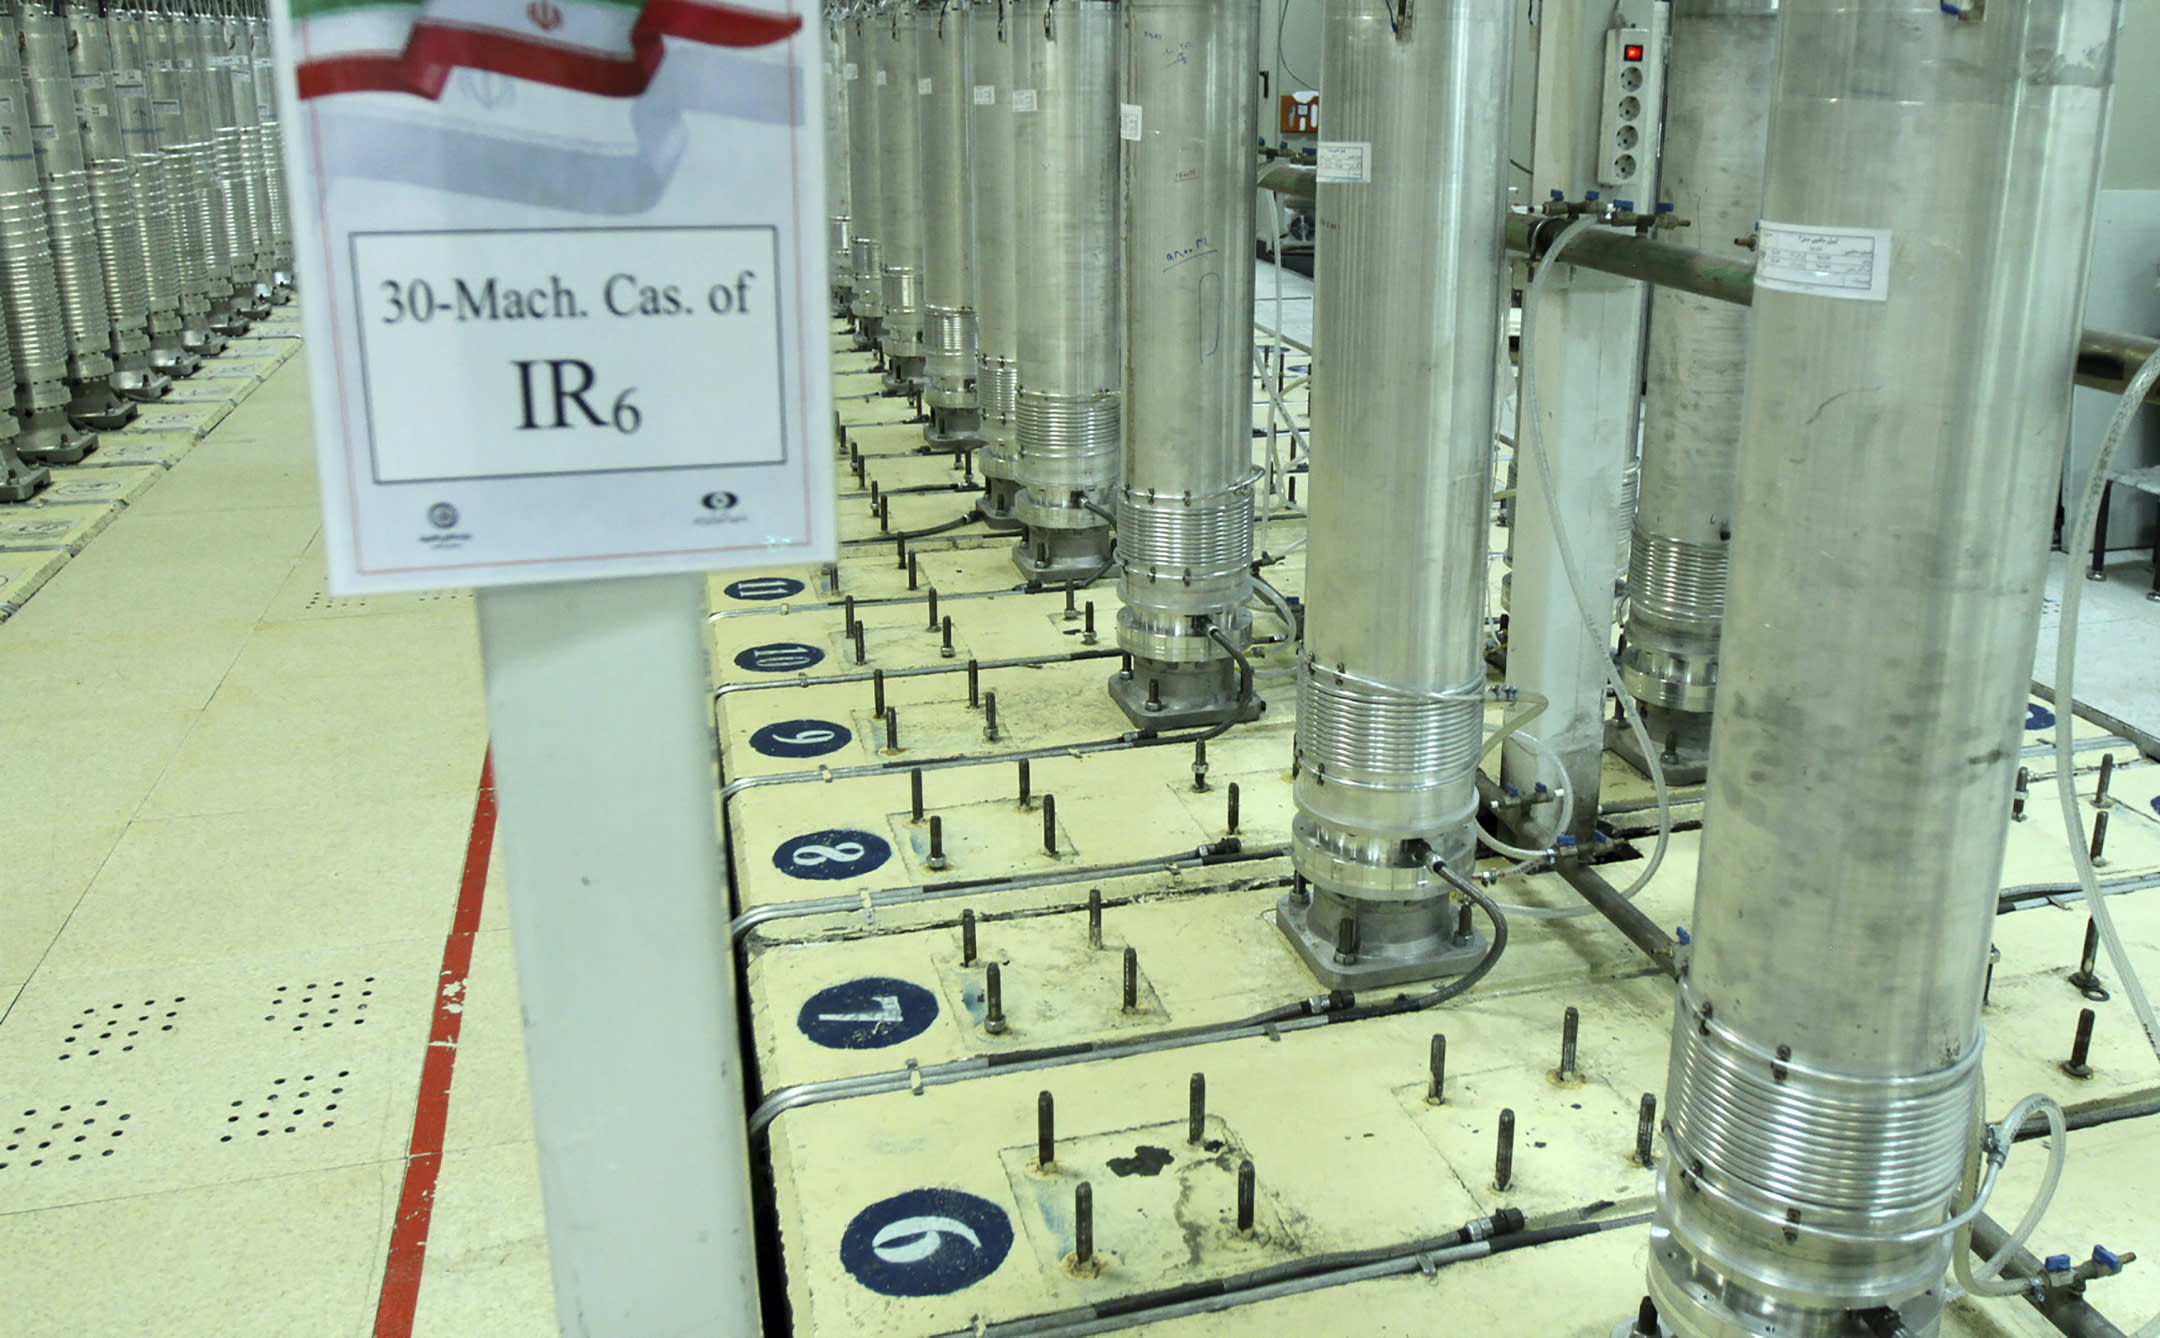 """This photo released Nov. 5, 2019, by the Atomic Energy Organization of Iran, shows centrifuge machines in the Natanz uranium enrichment facility in central Iran. Behrouz Kamalvandi, a spokesman in a report published Thursday, July 2, 2020 by the state-run IRNA news agency, said an """"incident"""" has damaged an under-construction building near Iran's Natanz nuclear site, but there was no damage to its centrifuge facility. Kamalvandi said authorities were investigating what happened. (Atomic Energy Organization of Iran via AP, File)"""